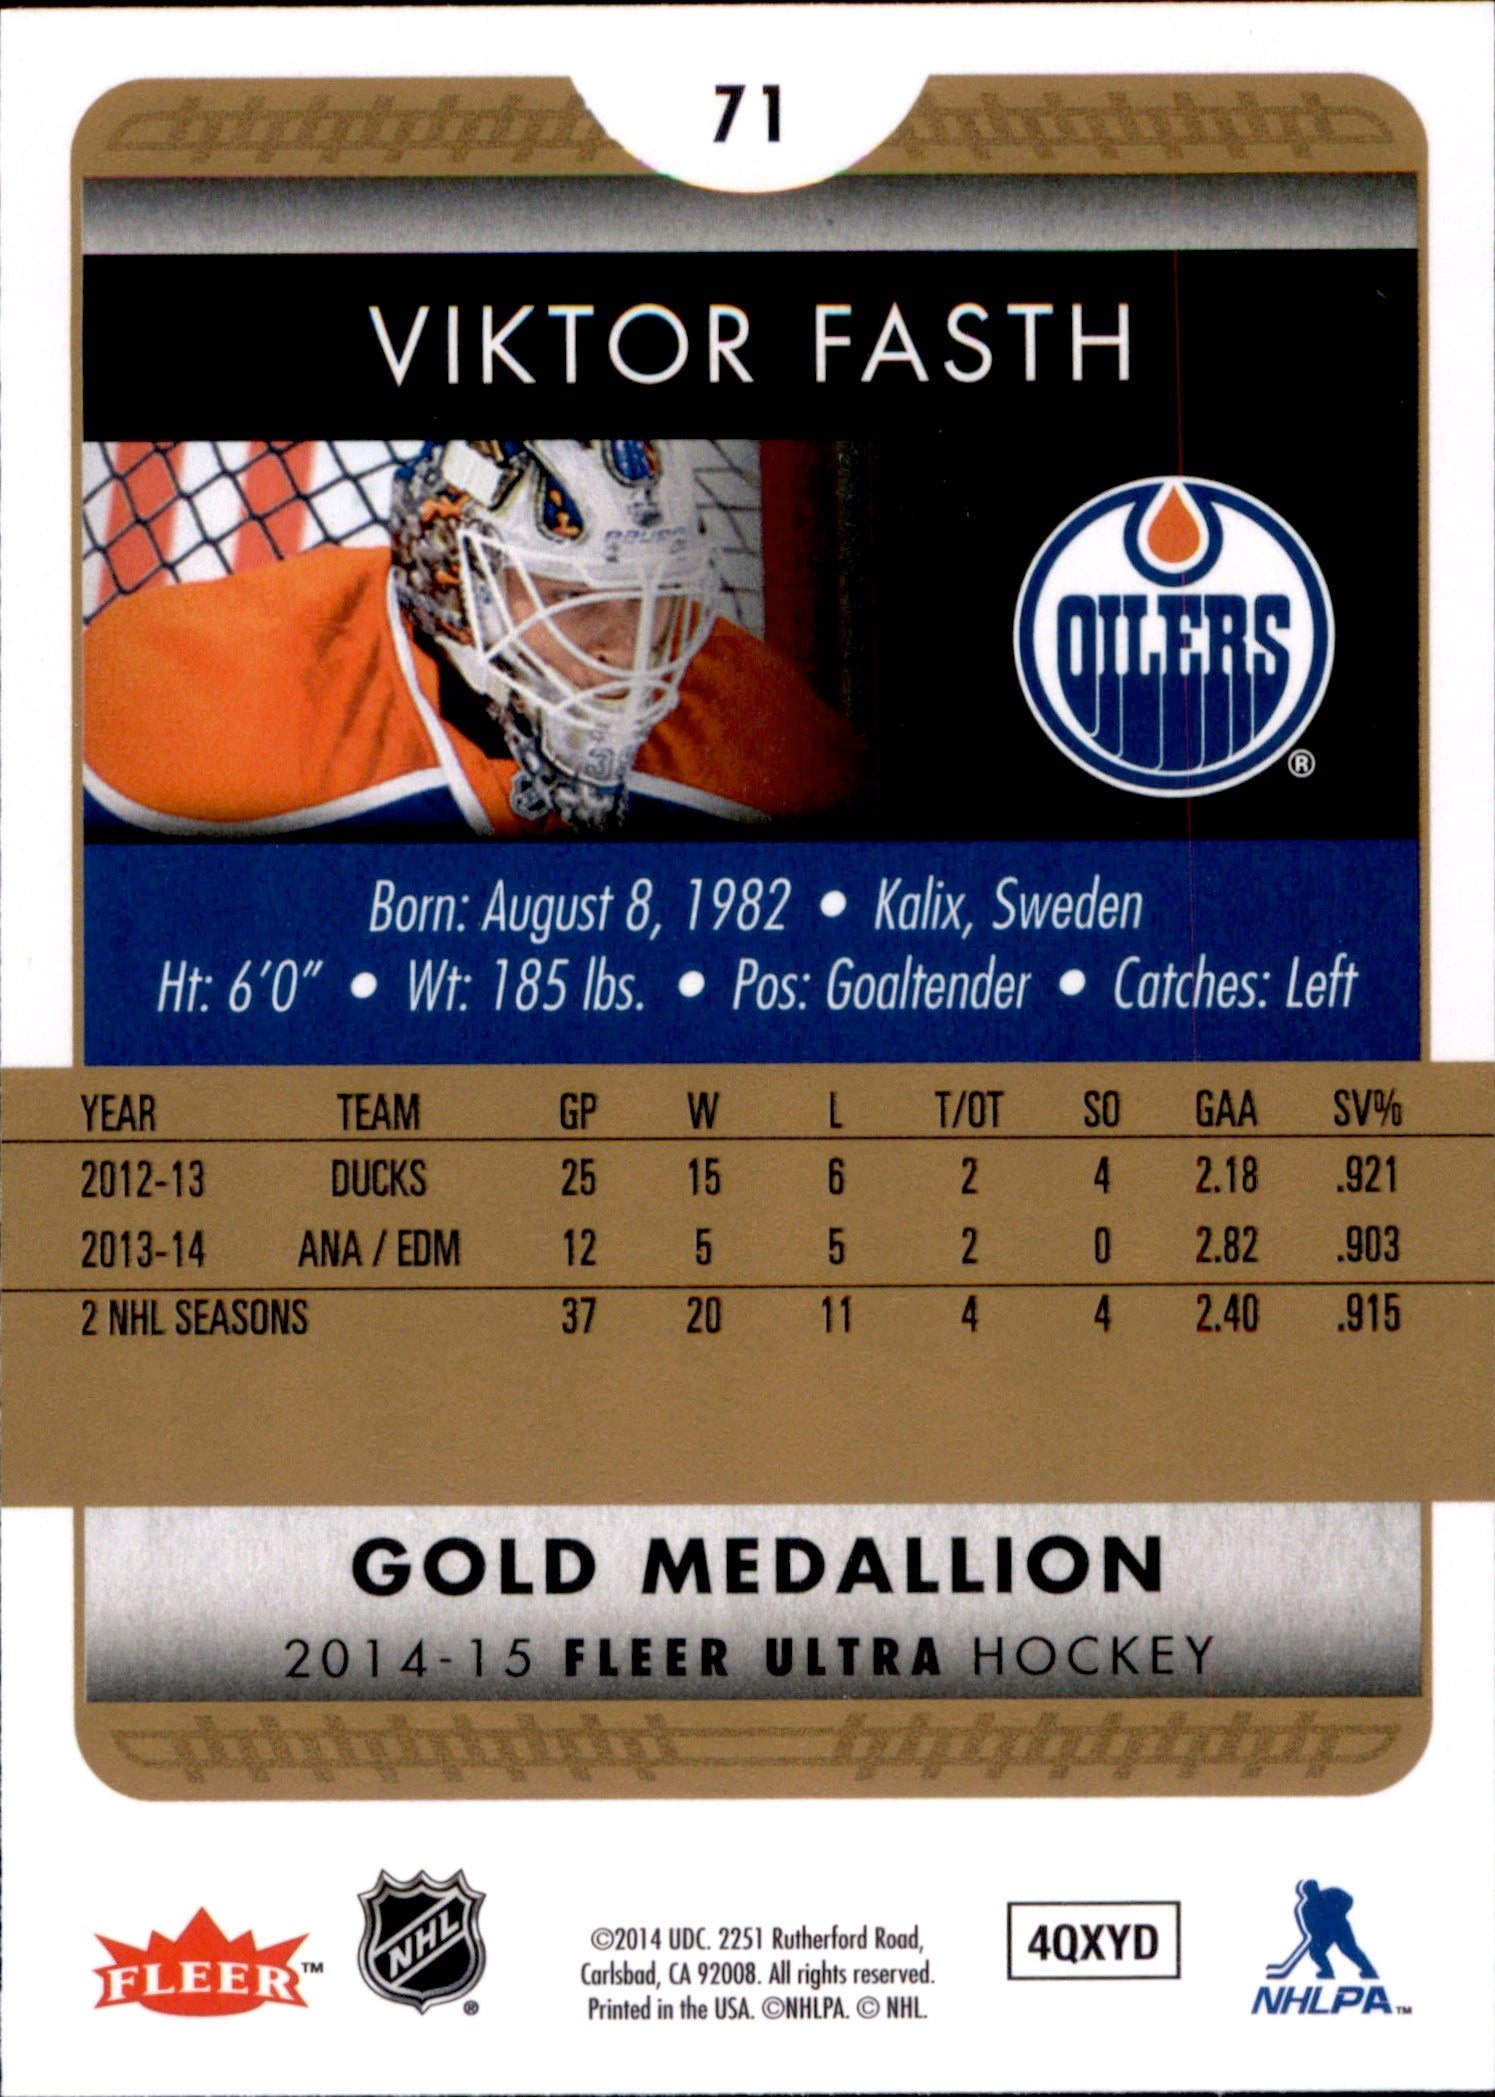 2014-15 Fleer Ultra Gold Medallion #071 Viktor Fasth | Eastridge Sports Cards